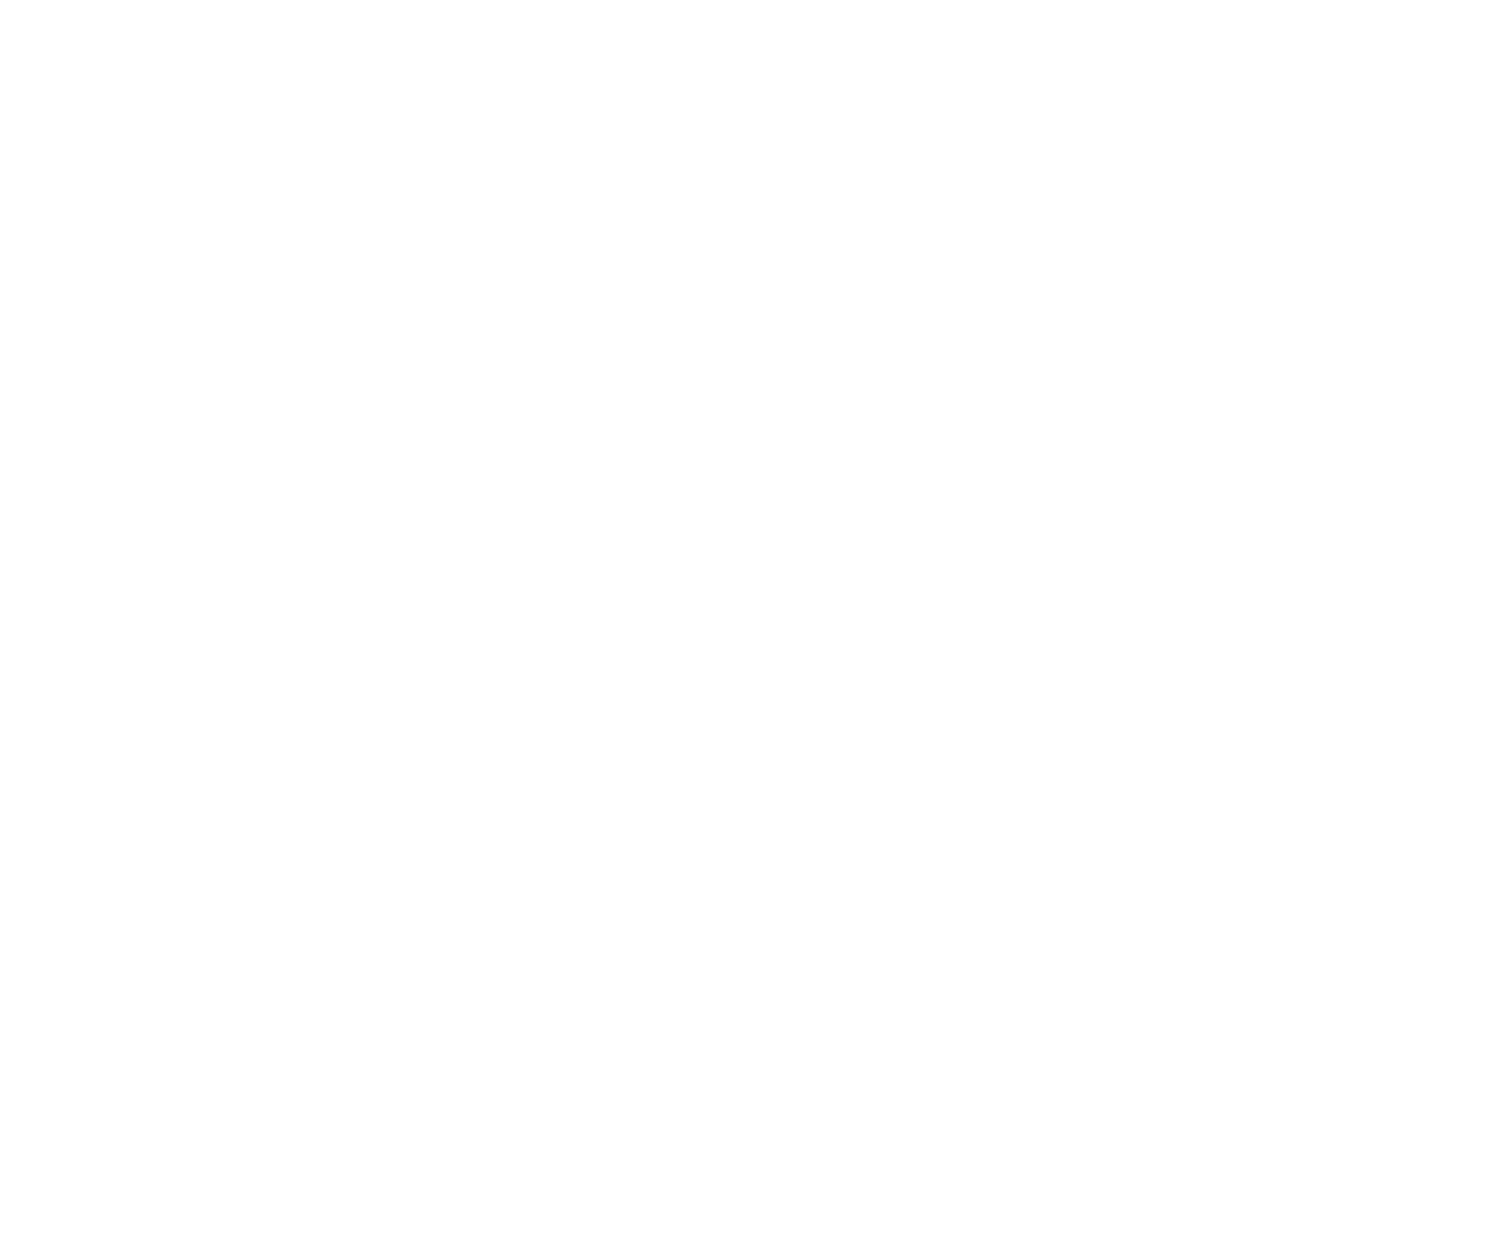 Biegel Waller